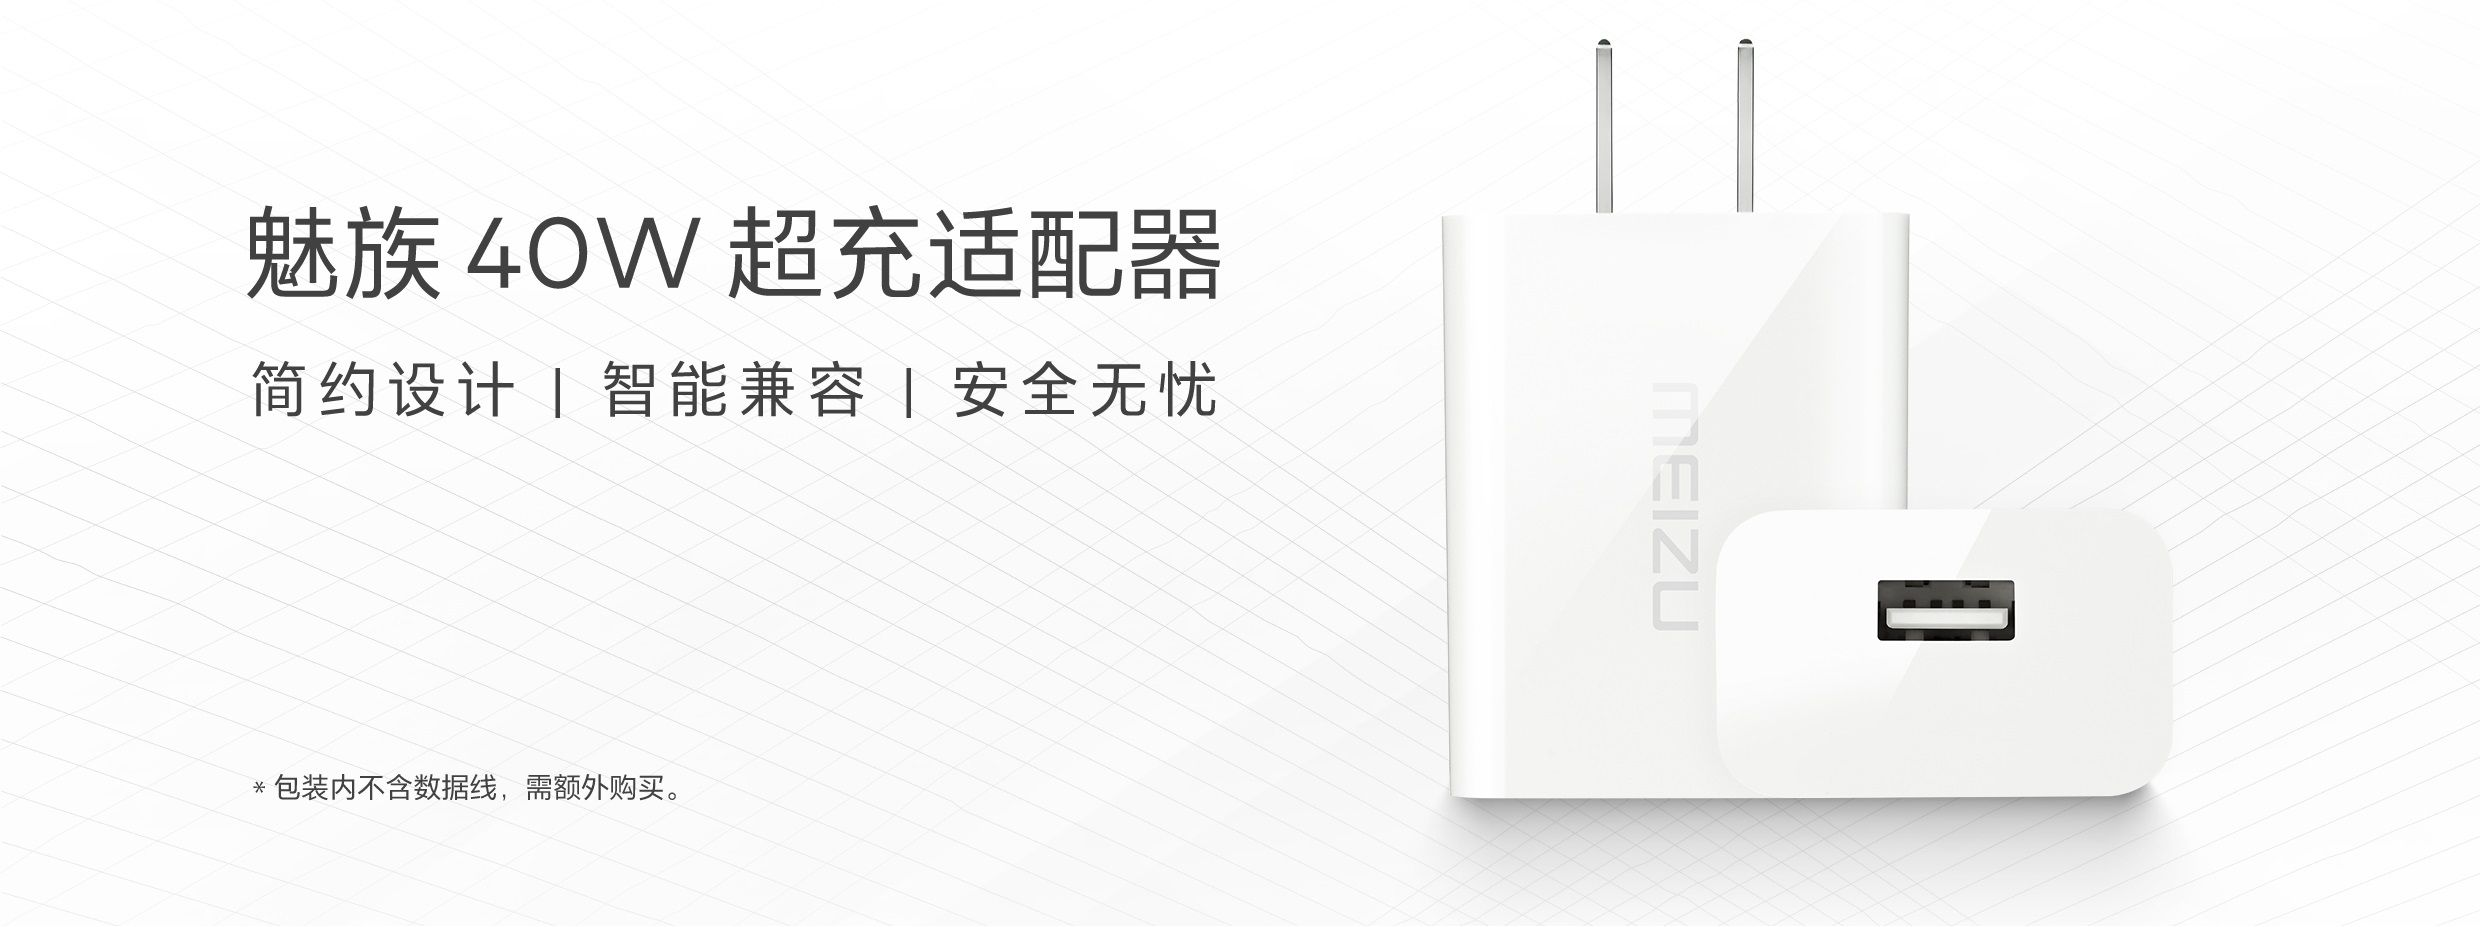 MEIZU Super Charger 40Wを発表、急速充電規格Quick Charge 2.0/3.0に対応